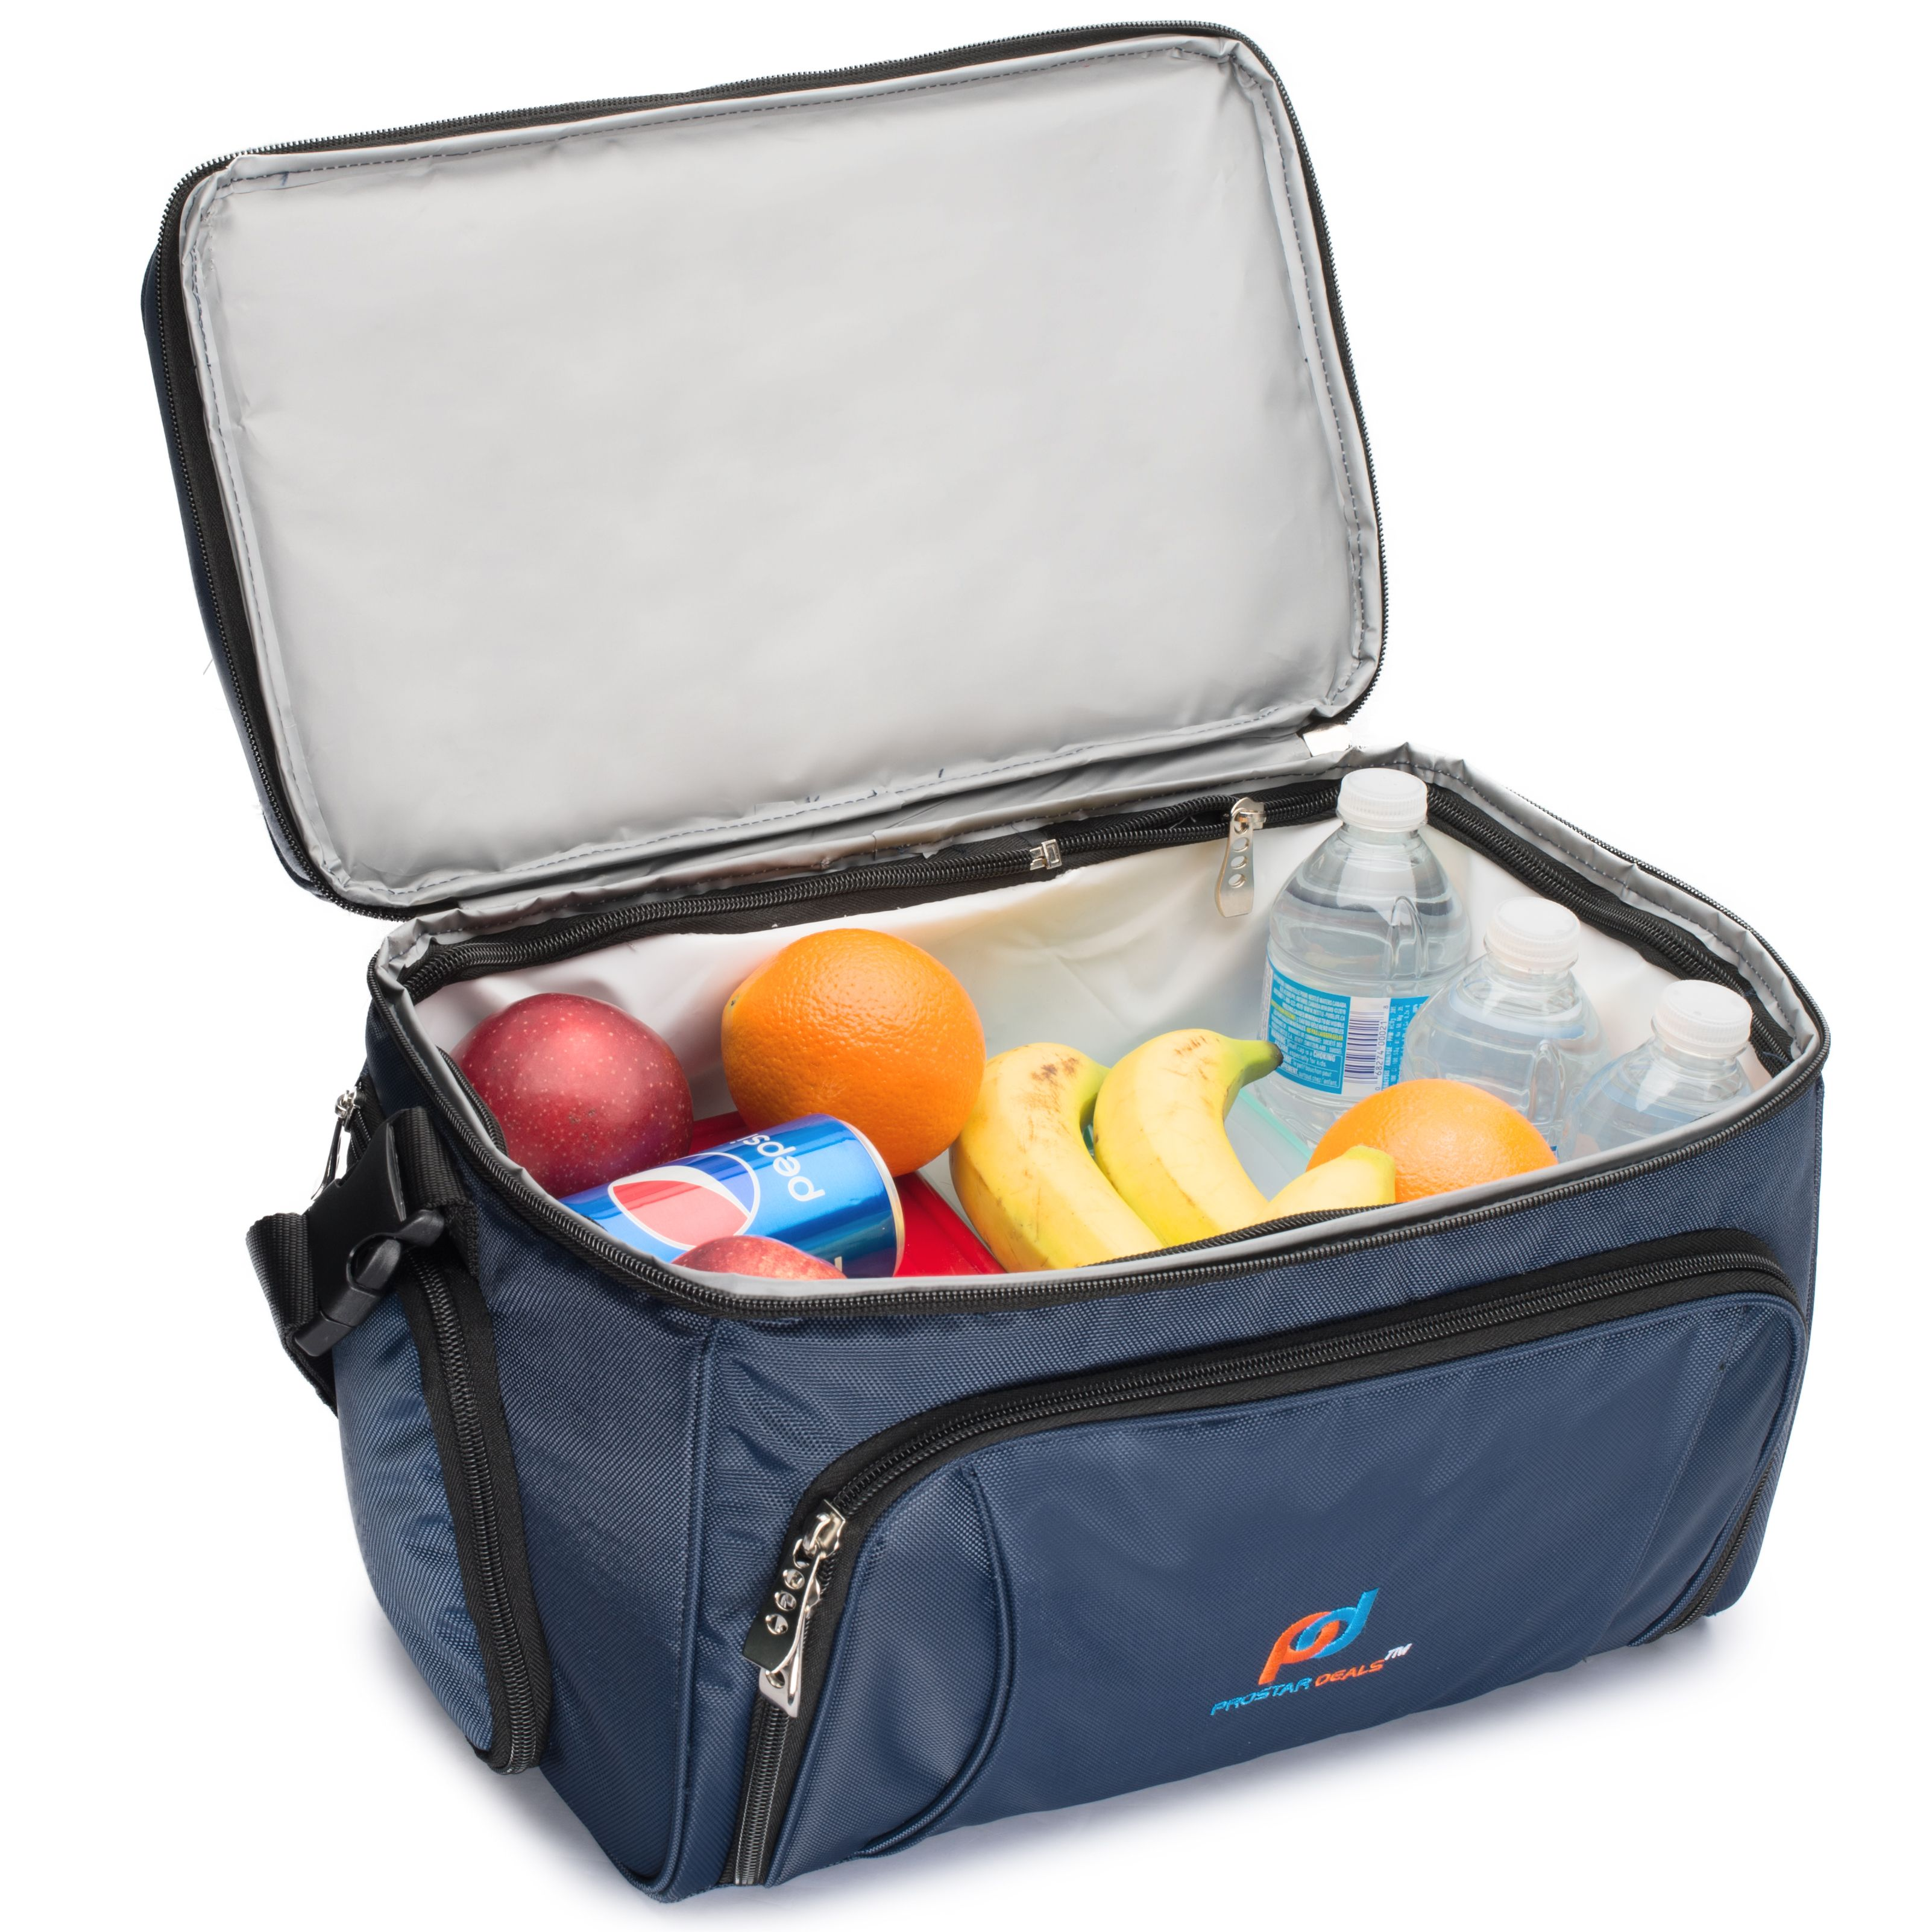 987a3e19d402 Cooler Bag. Two Sizes and Color. Dual Insulated Compartment. Heavy ...